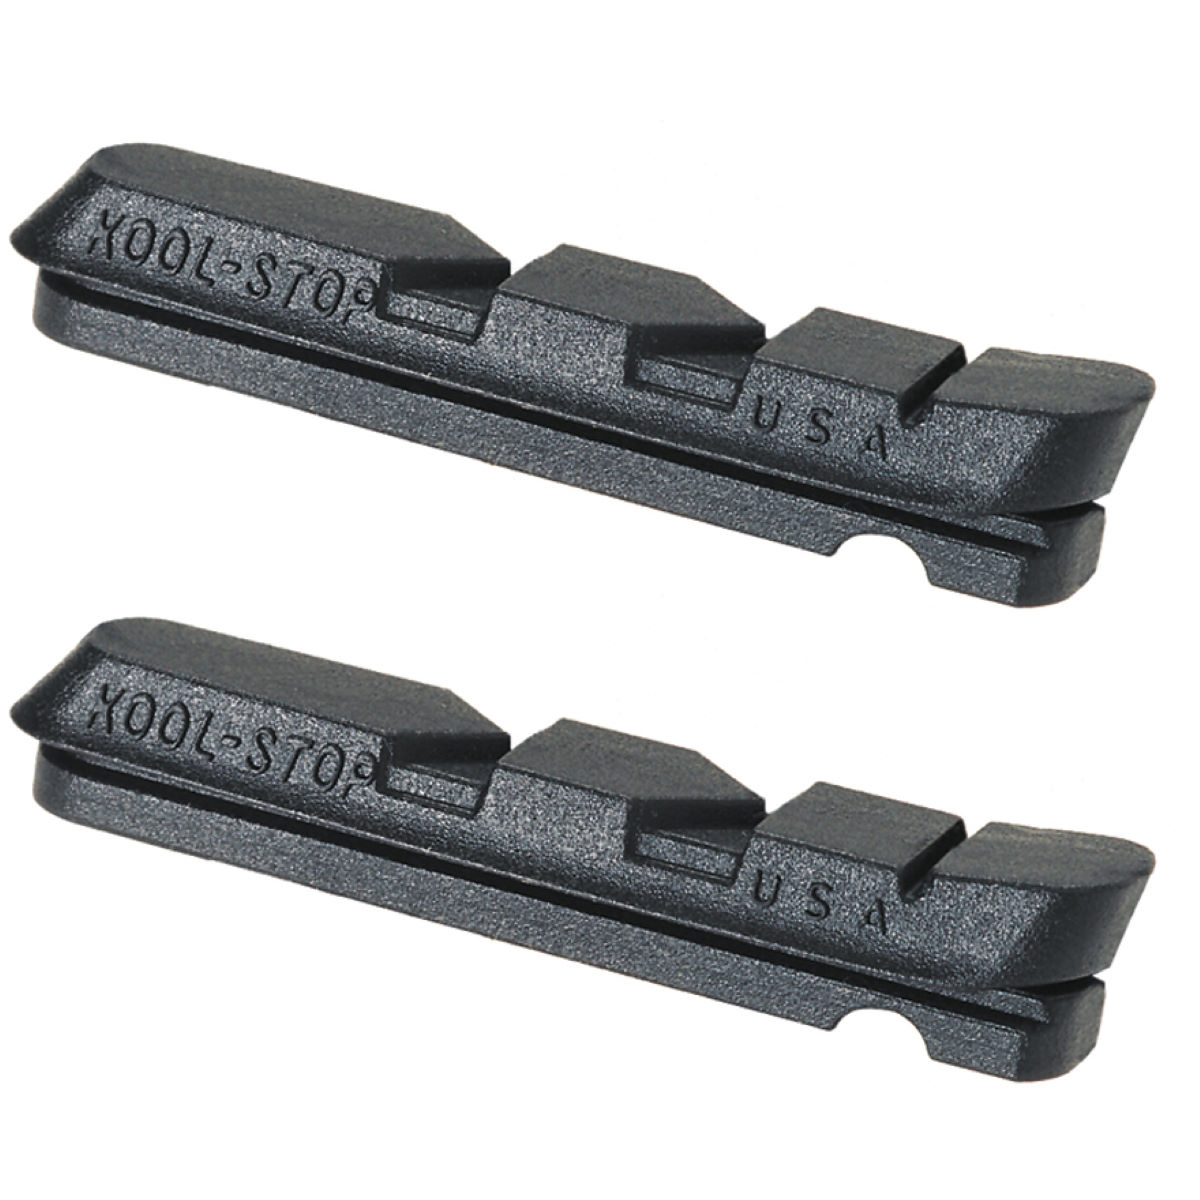 Kool Stop Kool Stop Dura Ace/Ultegra/105 Pair Of Cartridge Inserts   Rim Brake Pads